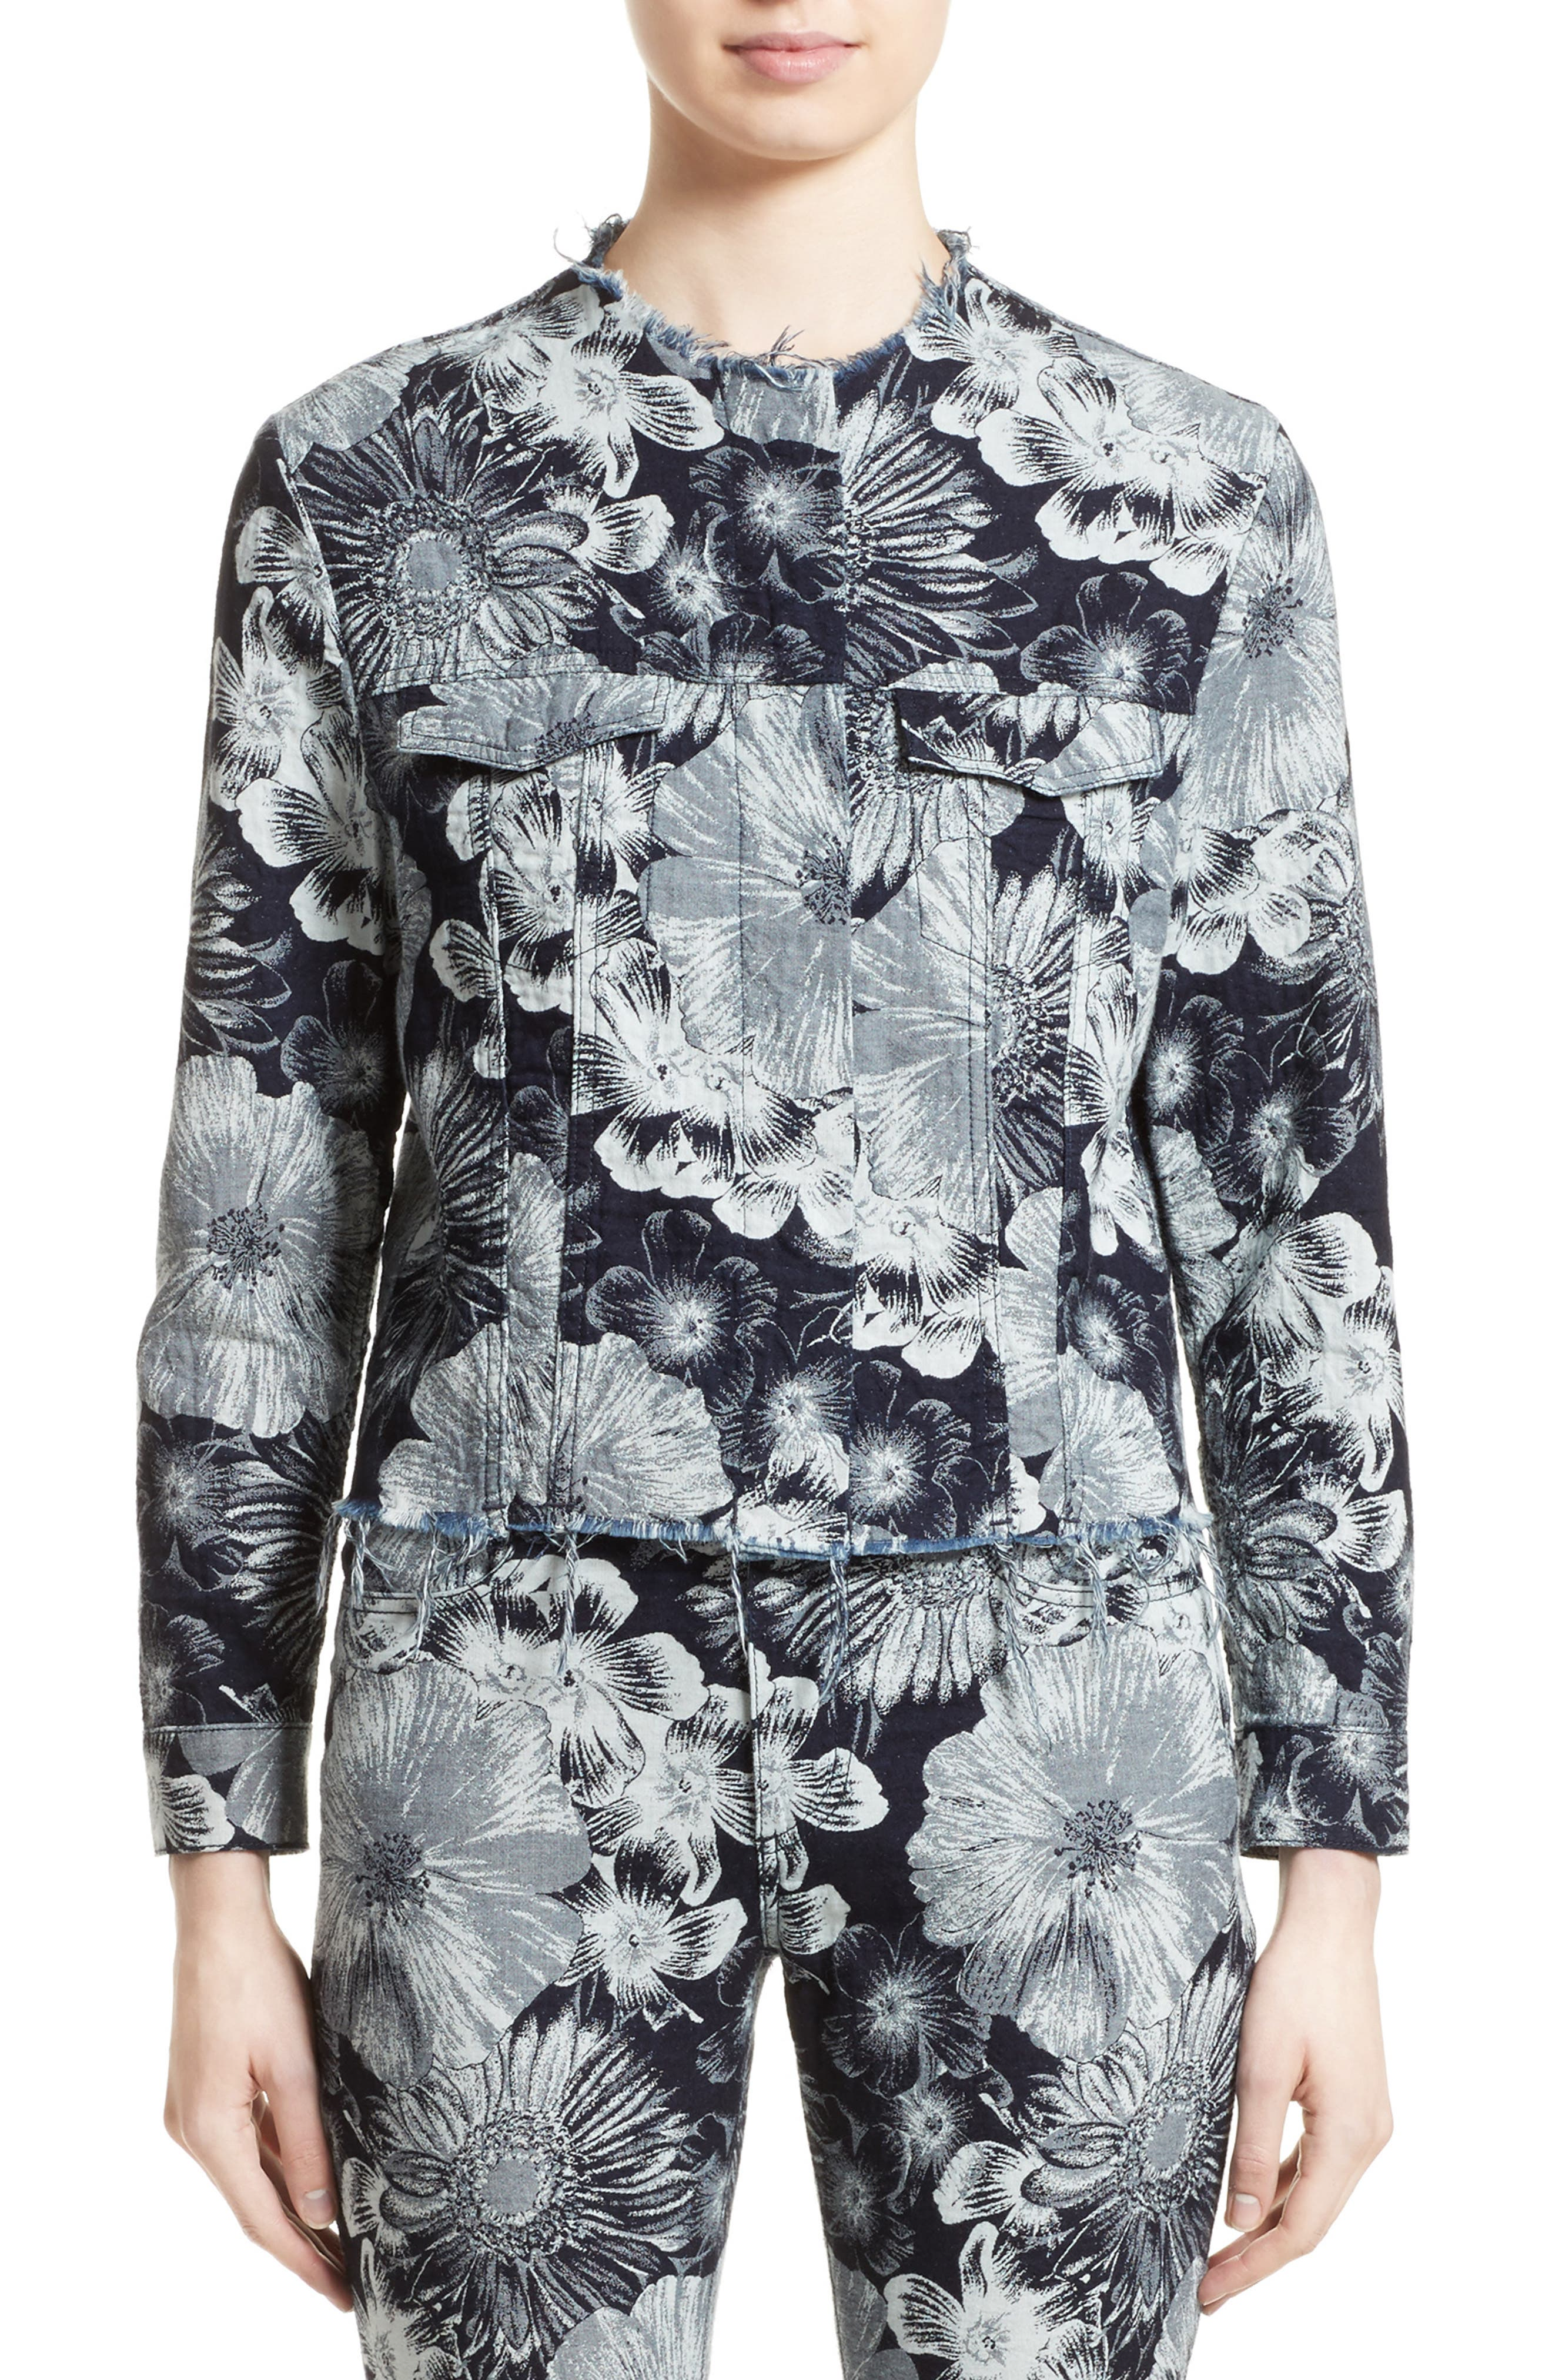 Marques'Almeida Floral Print Classic Fitted Denim Jacket,                         Main,                         color,